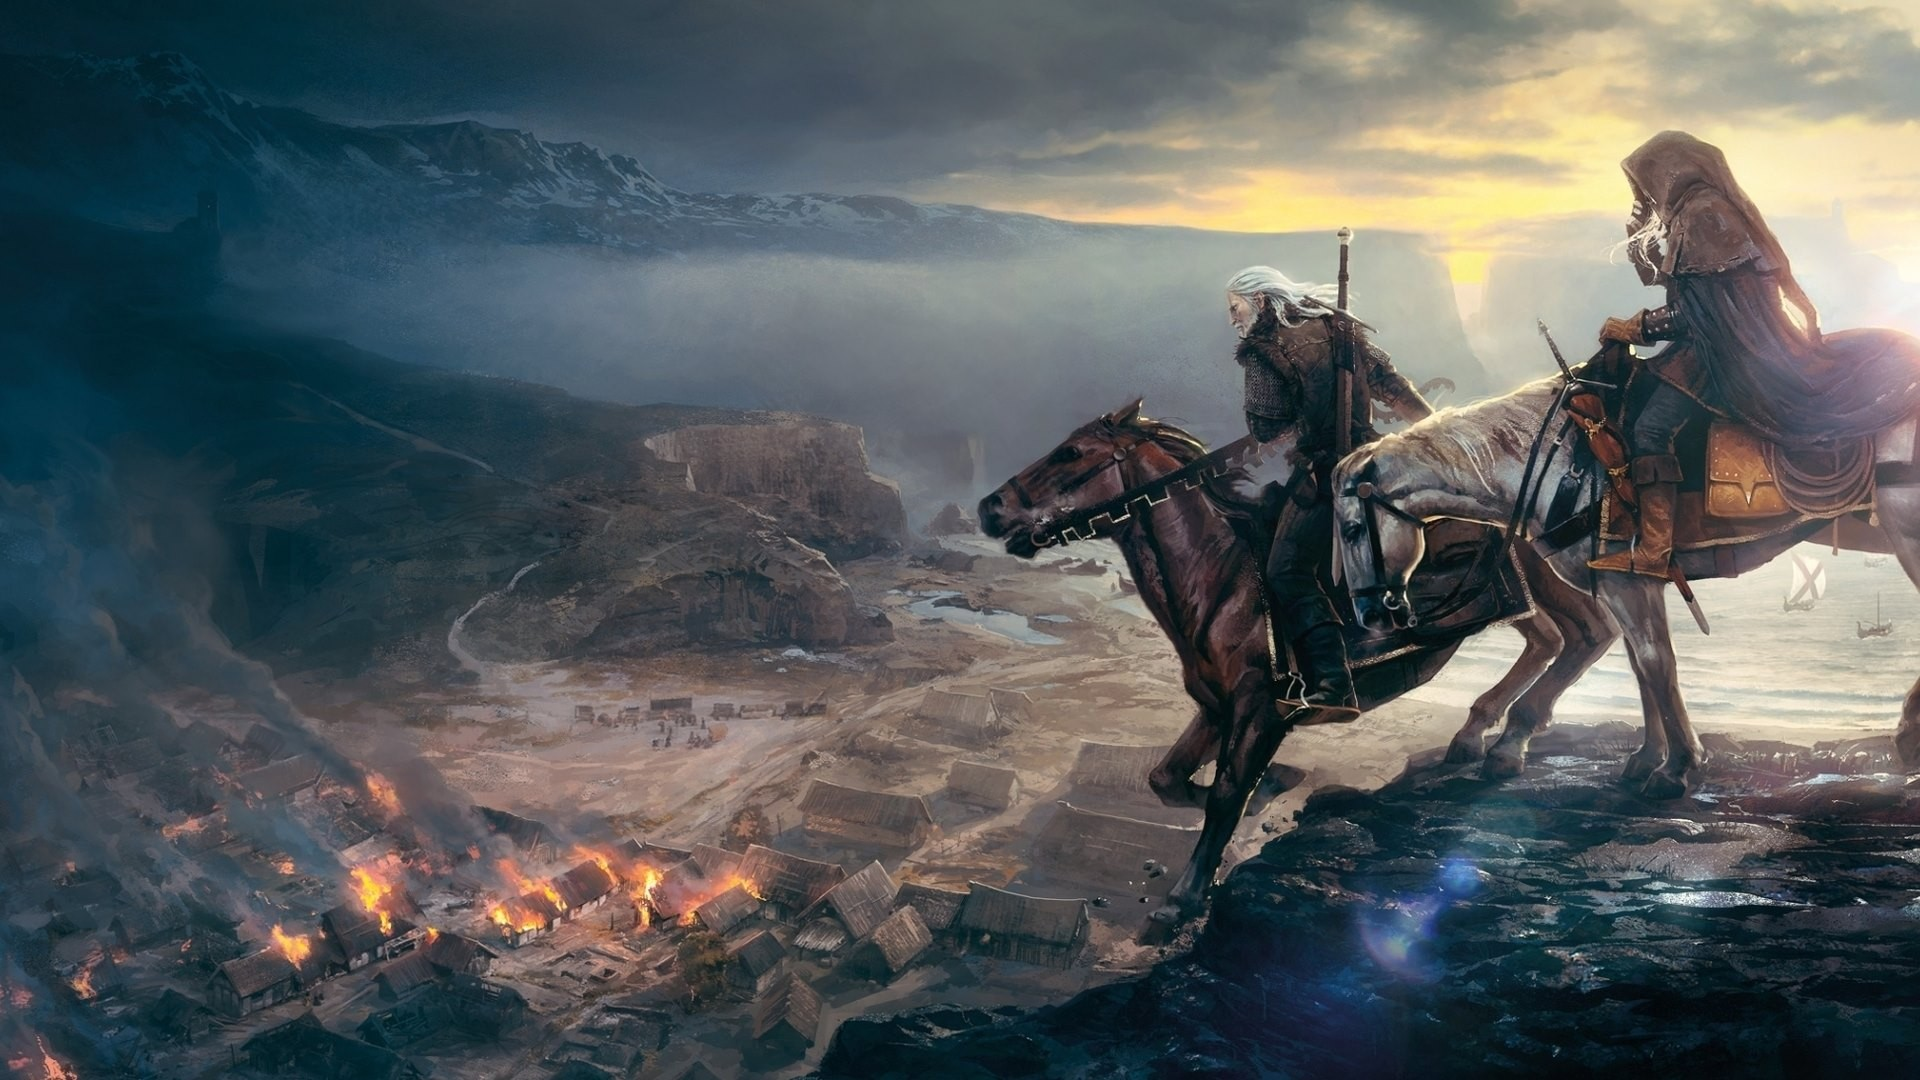 The Witcher 3 Wallpaper 4k: Witcher 3 Wallpaper 4K ·① Download Free Wallpapers For